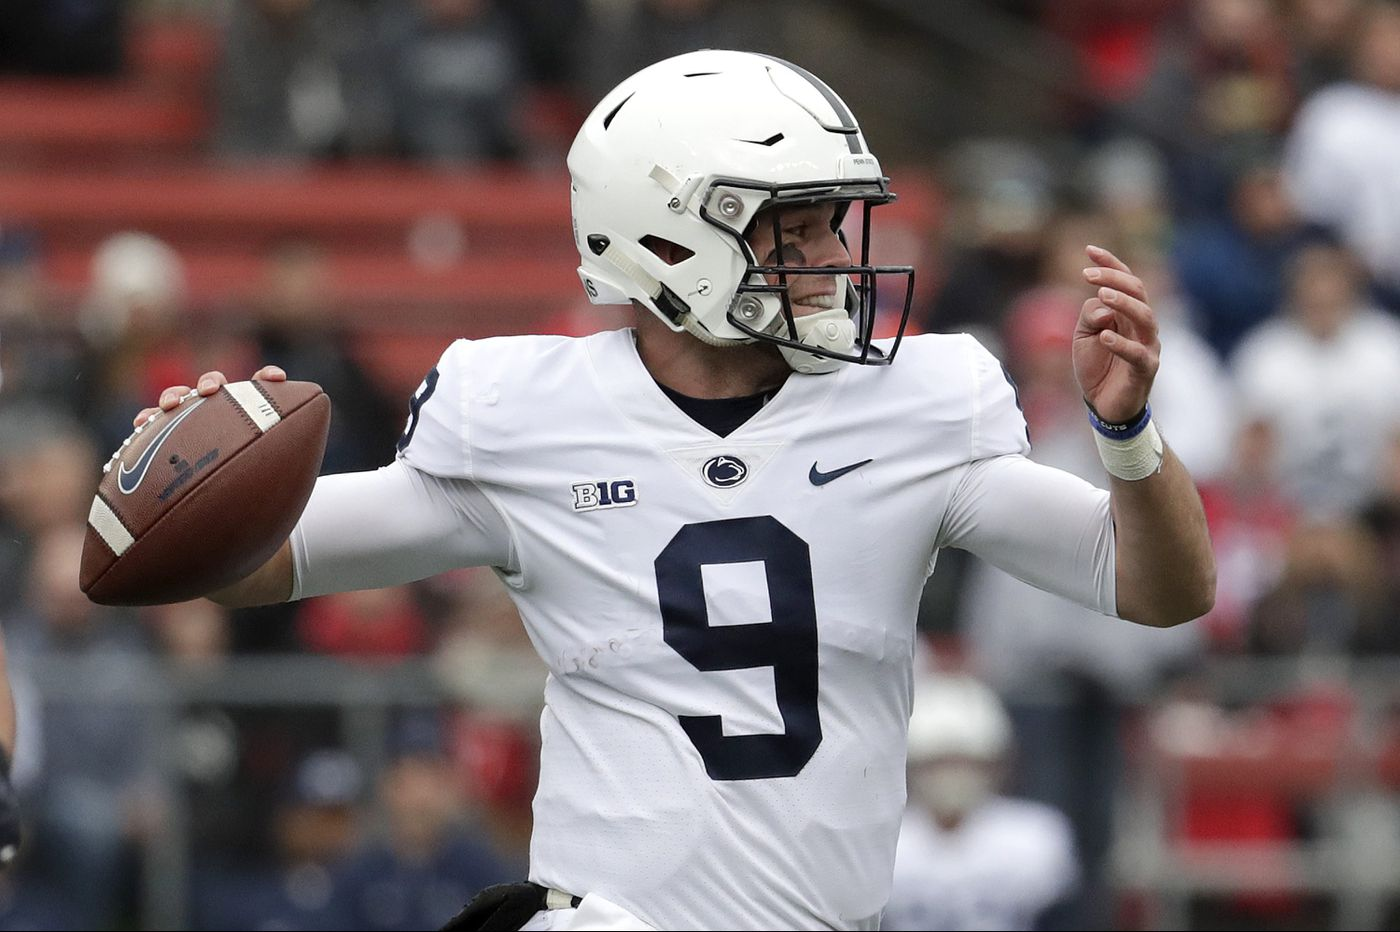 Penn State hopes to have passing game finally straightened out